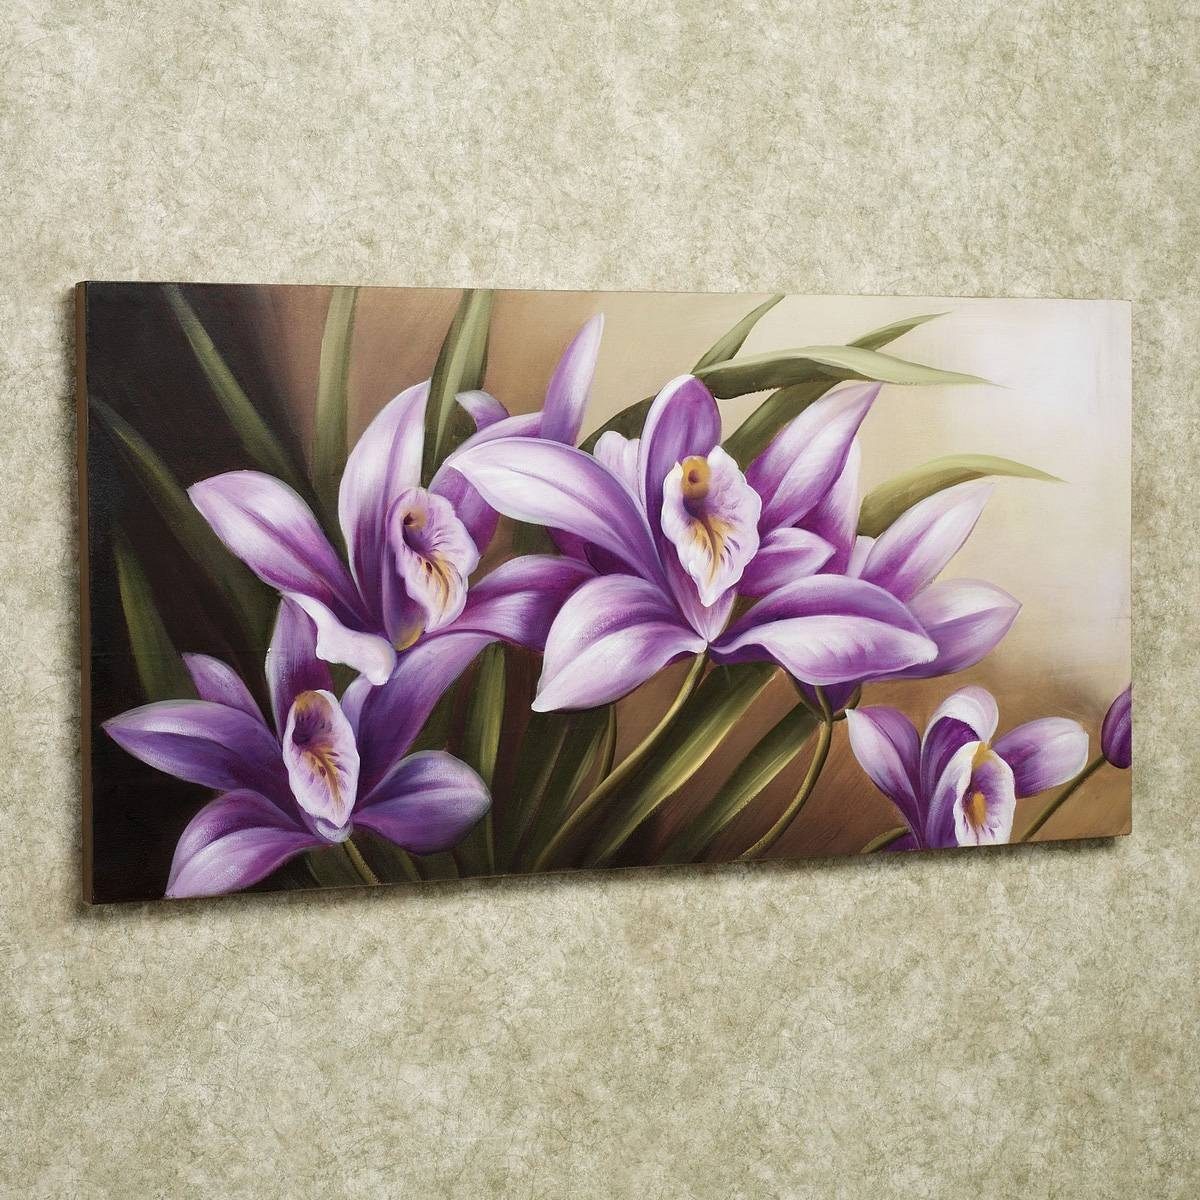 Beautiful Flower Painting On Simple Square Frame With Cute Purple For Most Current Flower Wall Art Canvas (View 3 of 20)